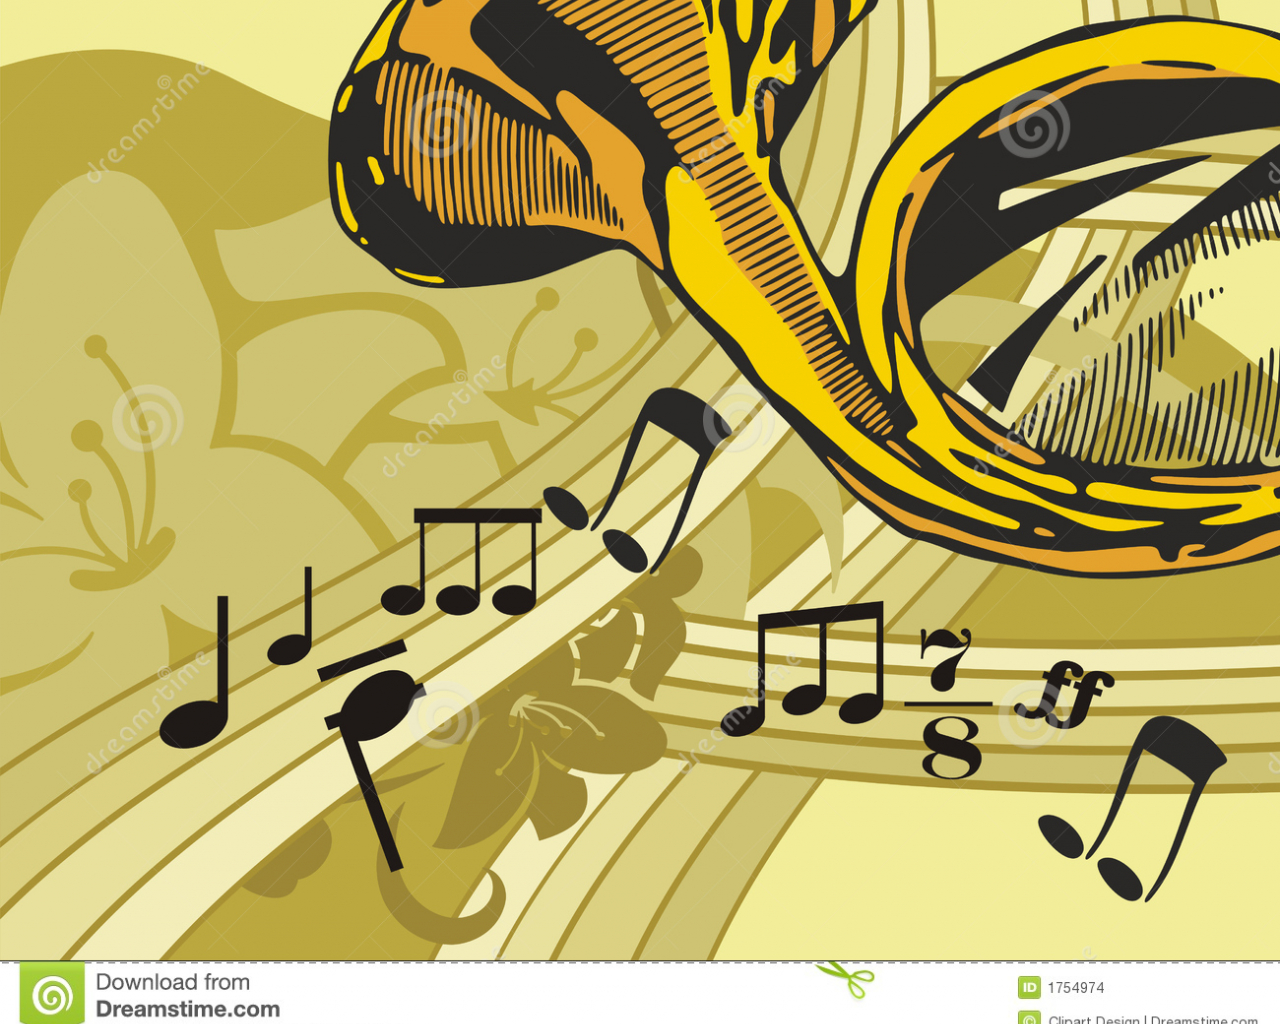 Free Download Marching Band Music Wallpaper 1300x1090 For